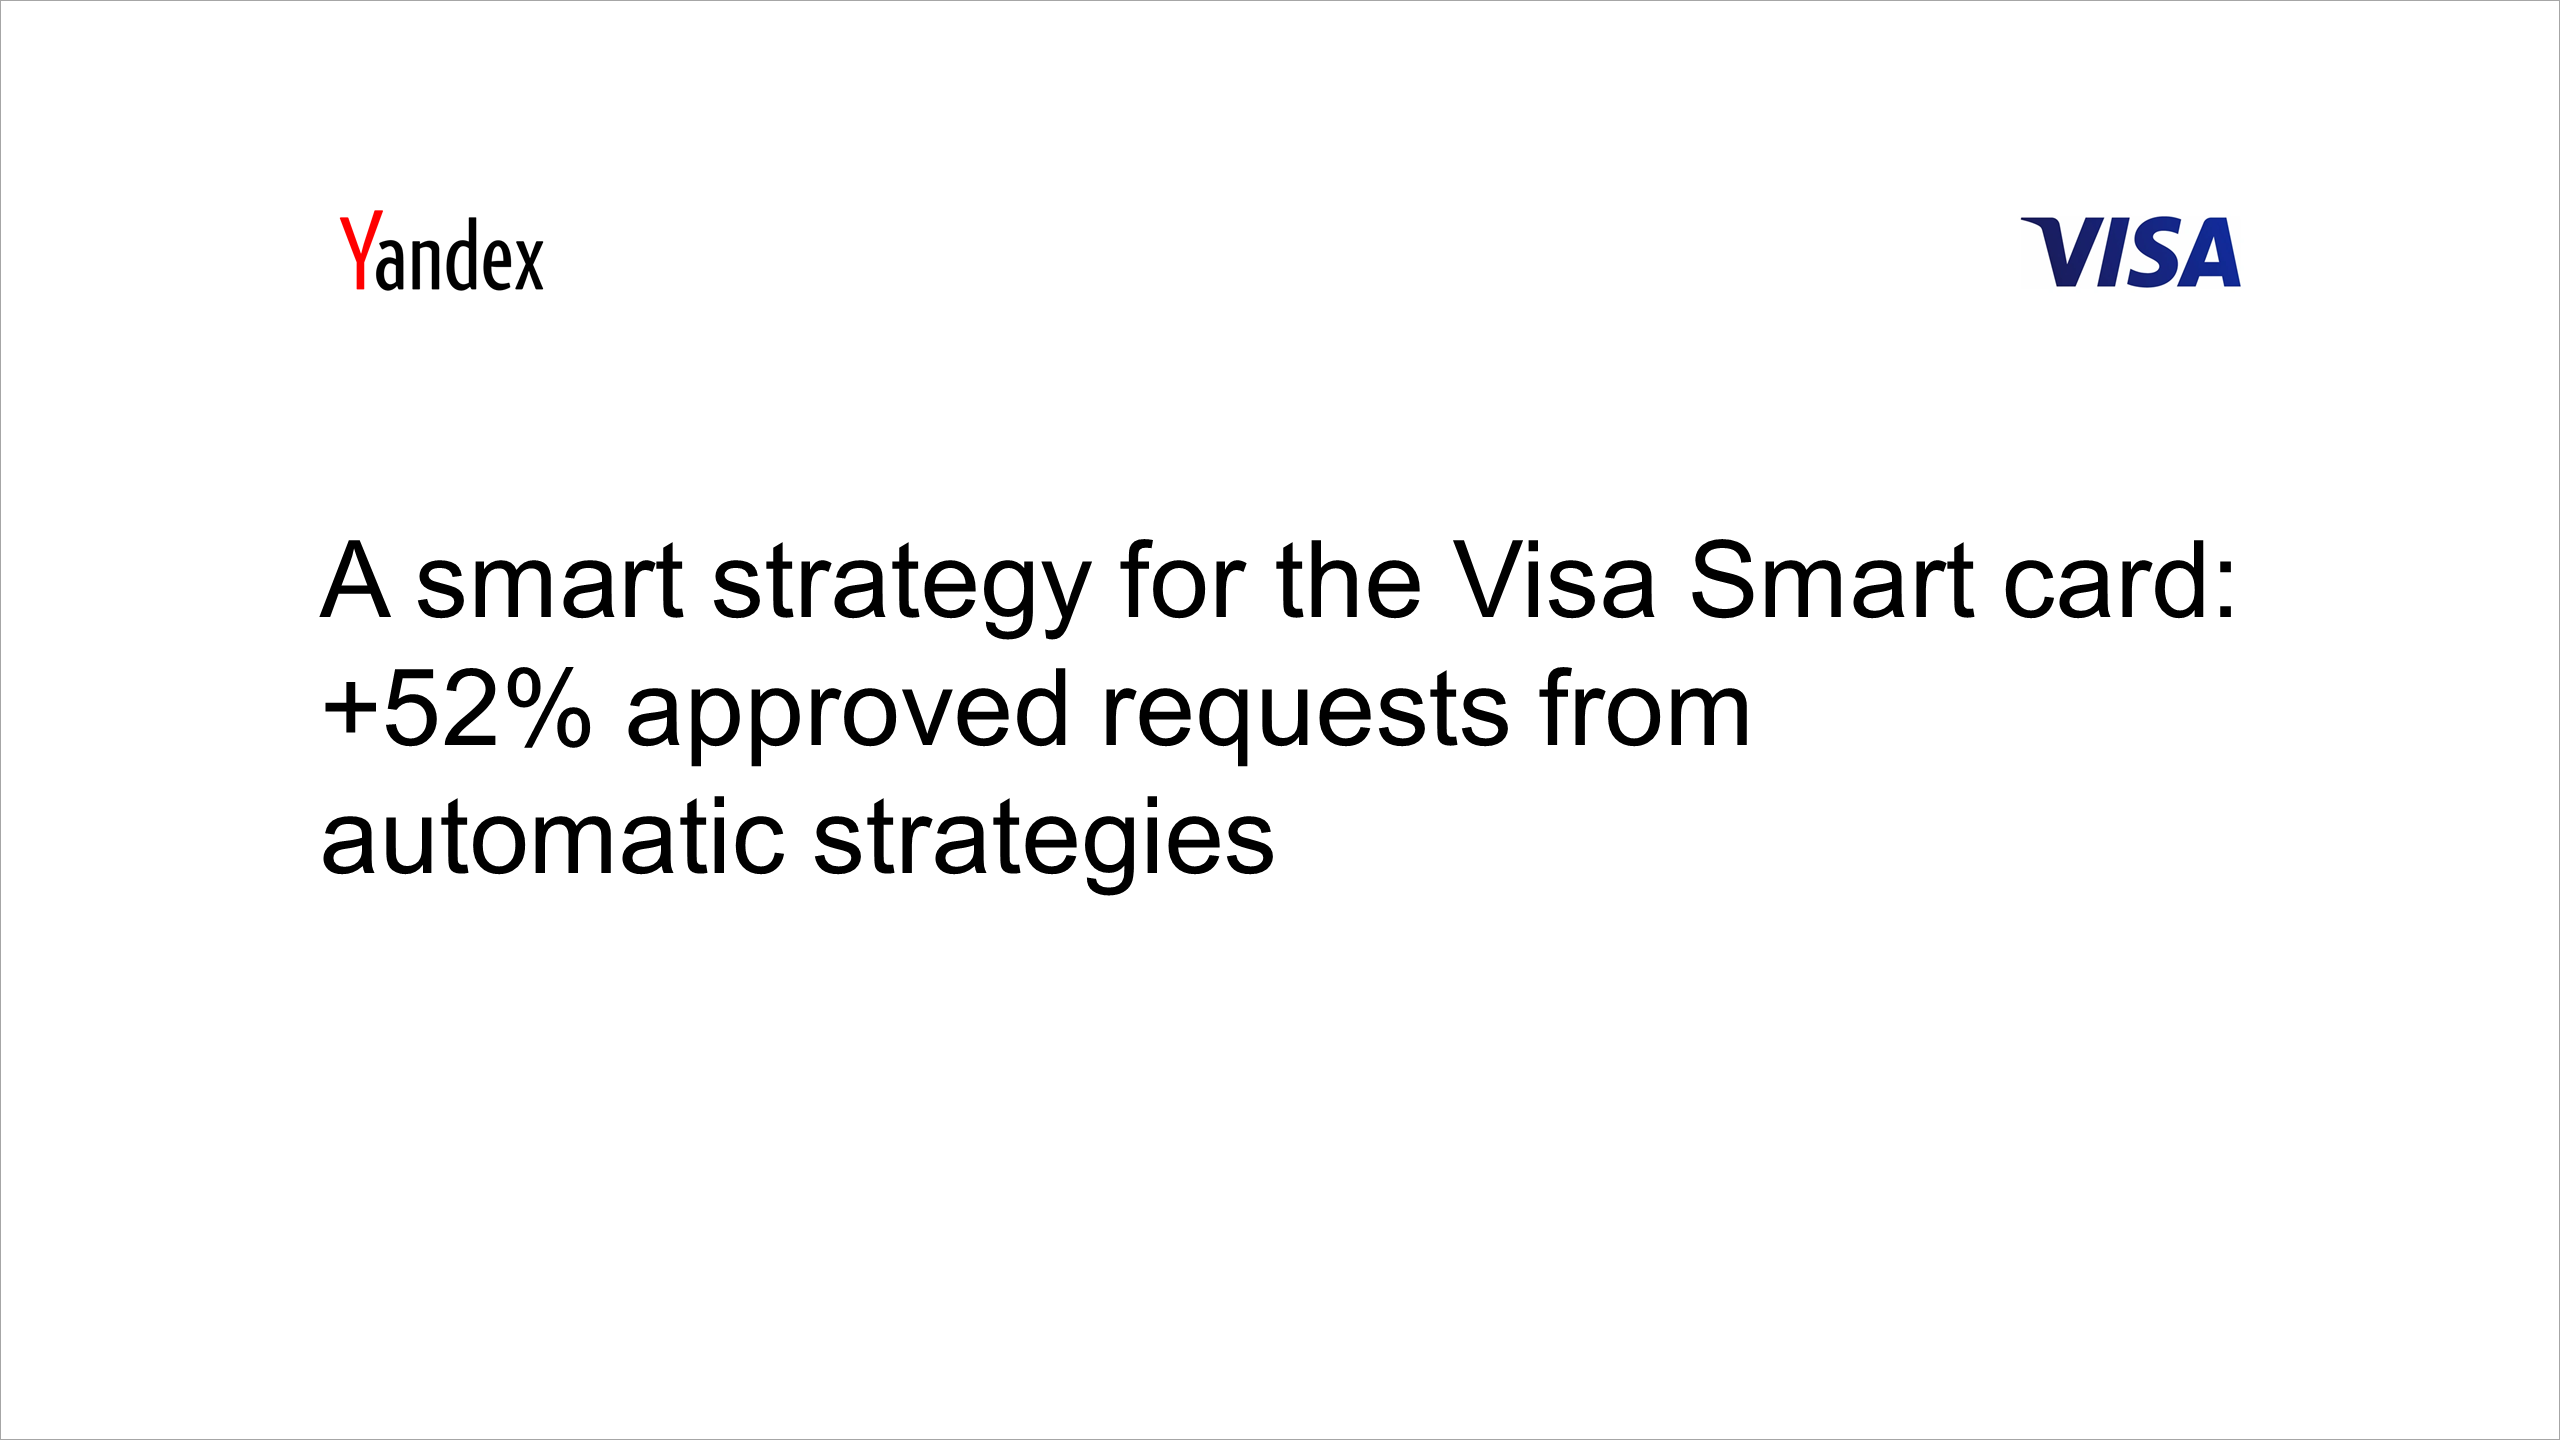 Asmart automatic strategy for the Visa Smart card: +52% approved requests from automatic strategies